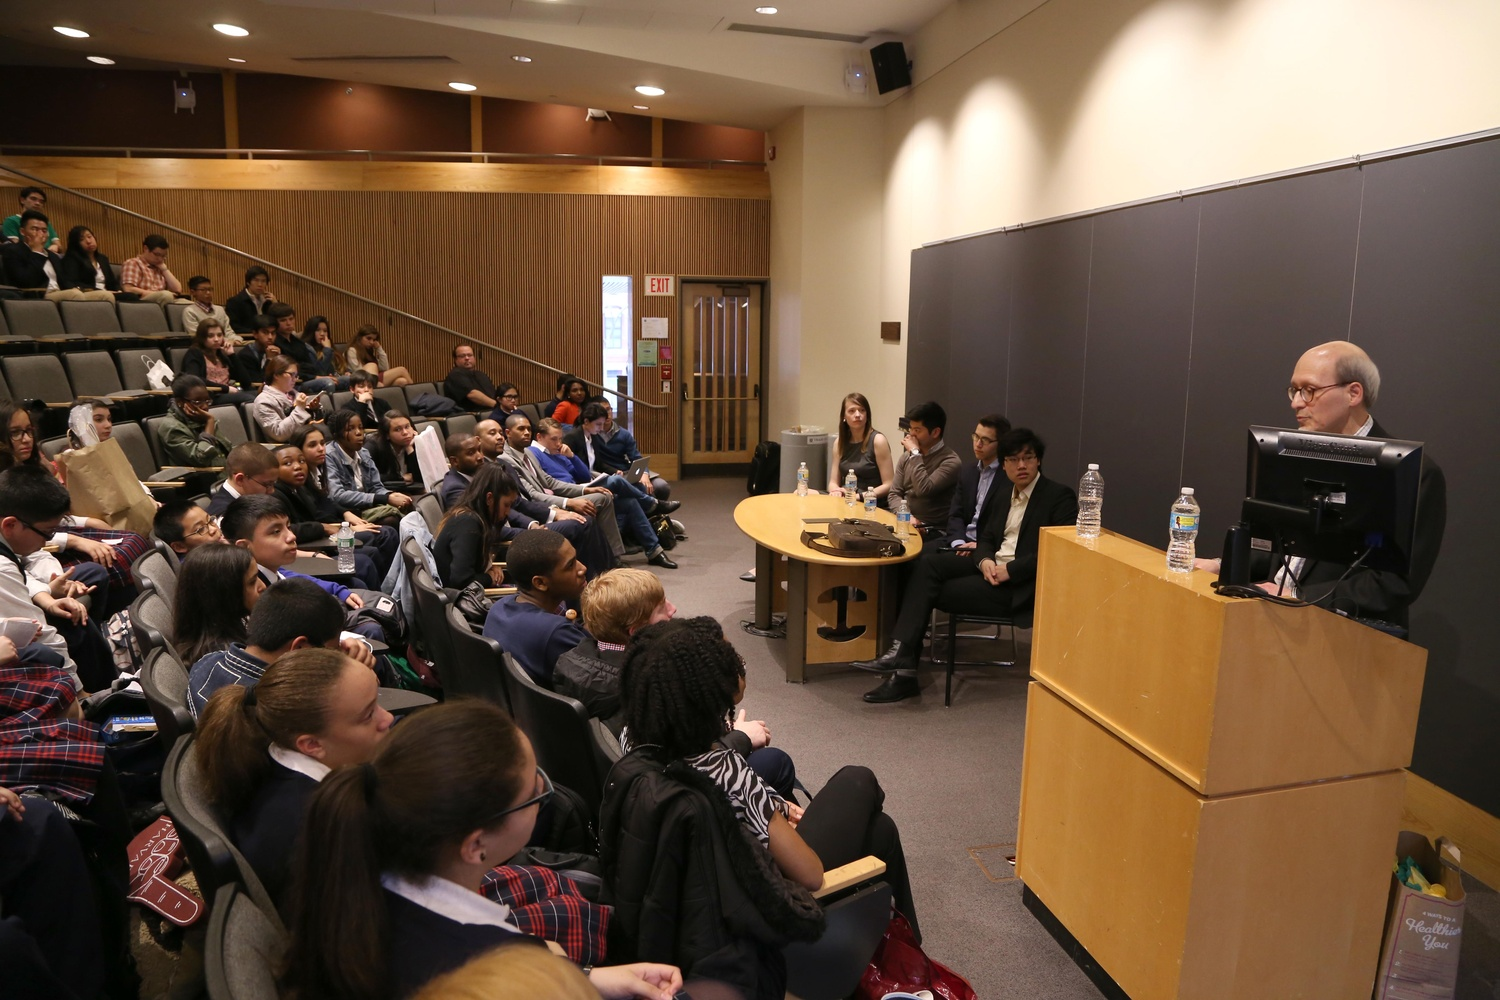 Harvard Ventures hosted an event focusing on the intersection of entrepreneurship and personal empowerment on Friday afternoon at the Fong Auditorium.